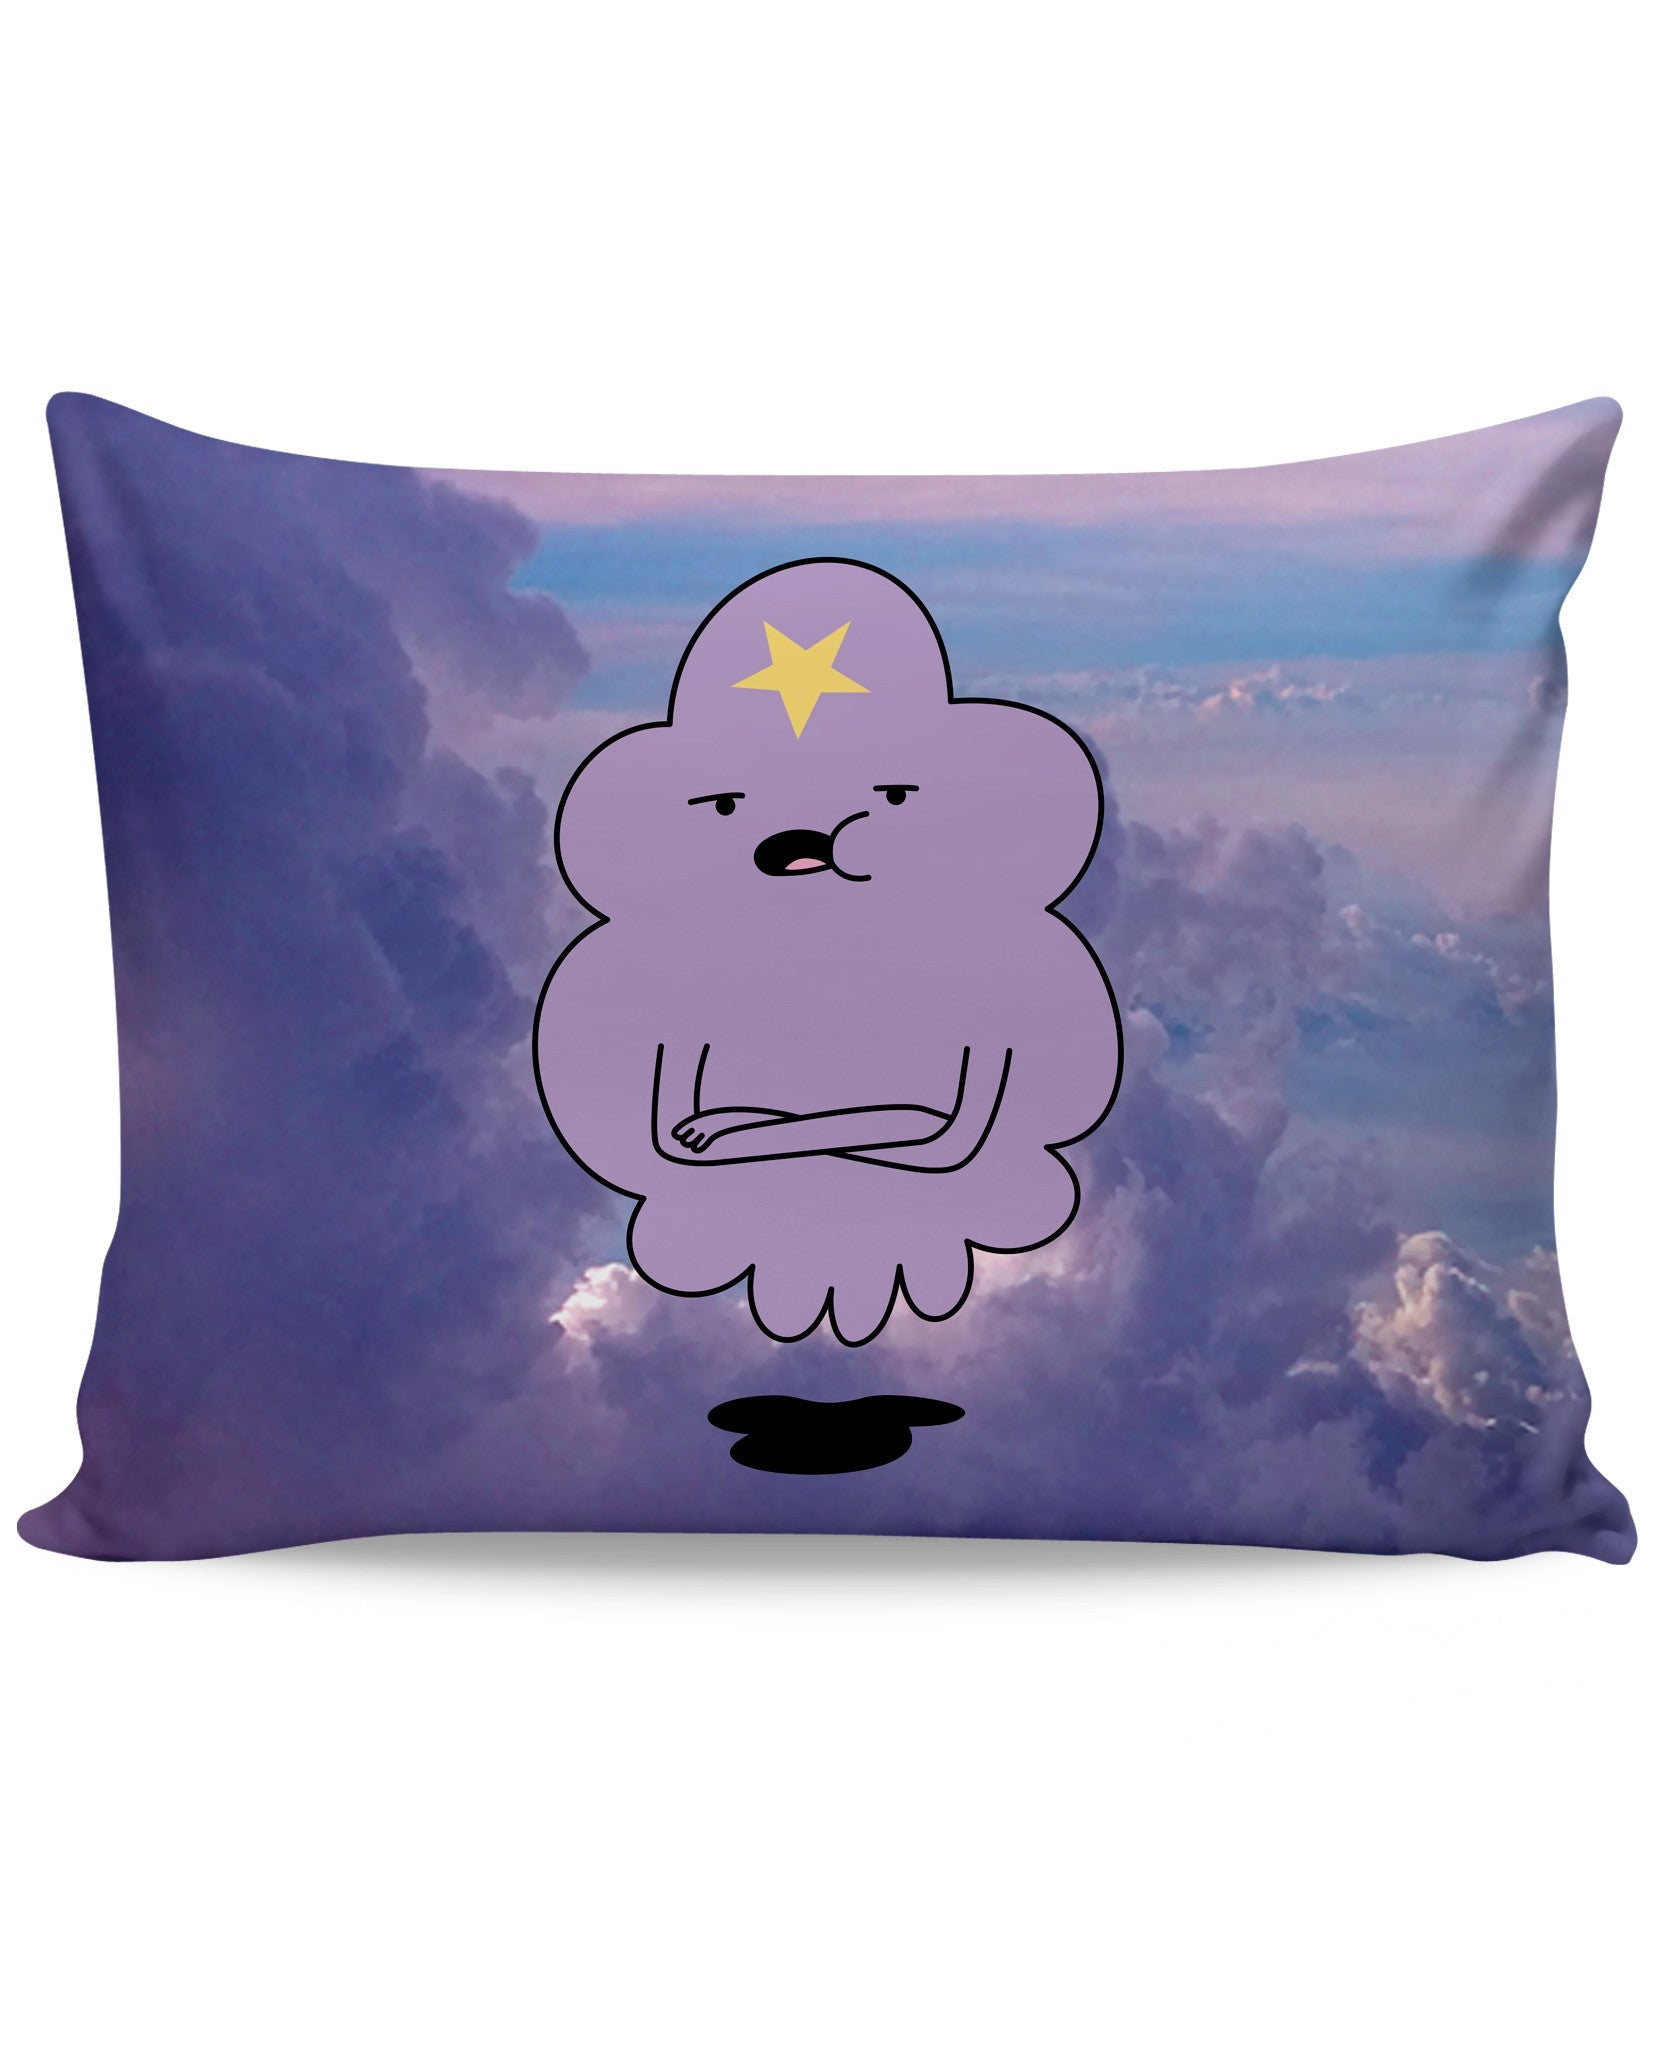 Lumpy Space Princess Pillow Case